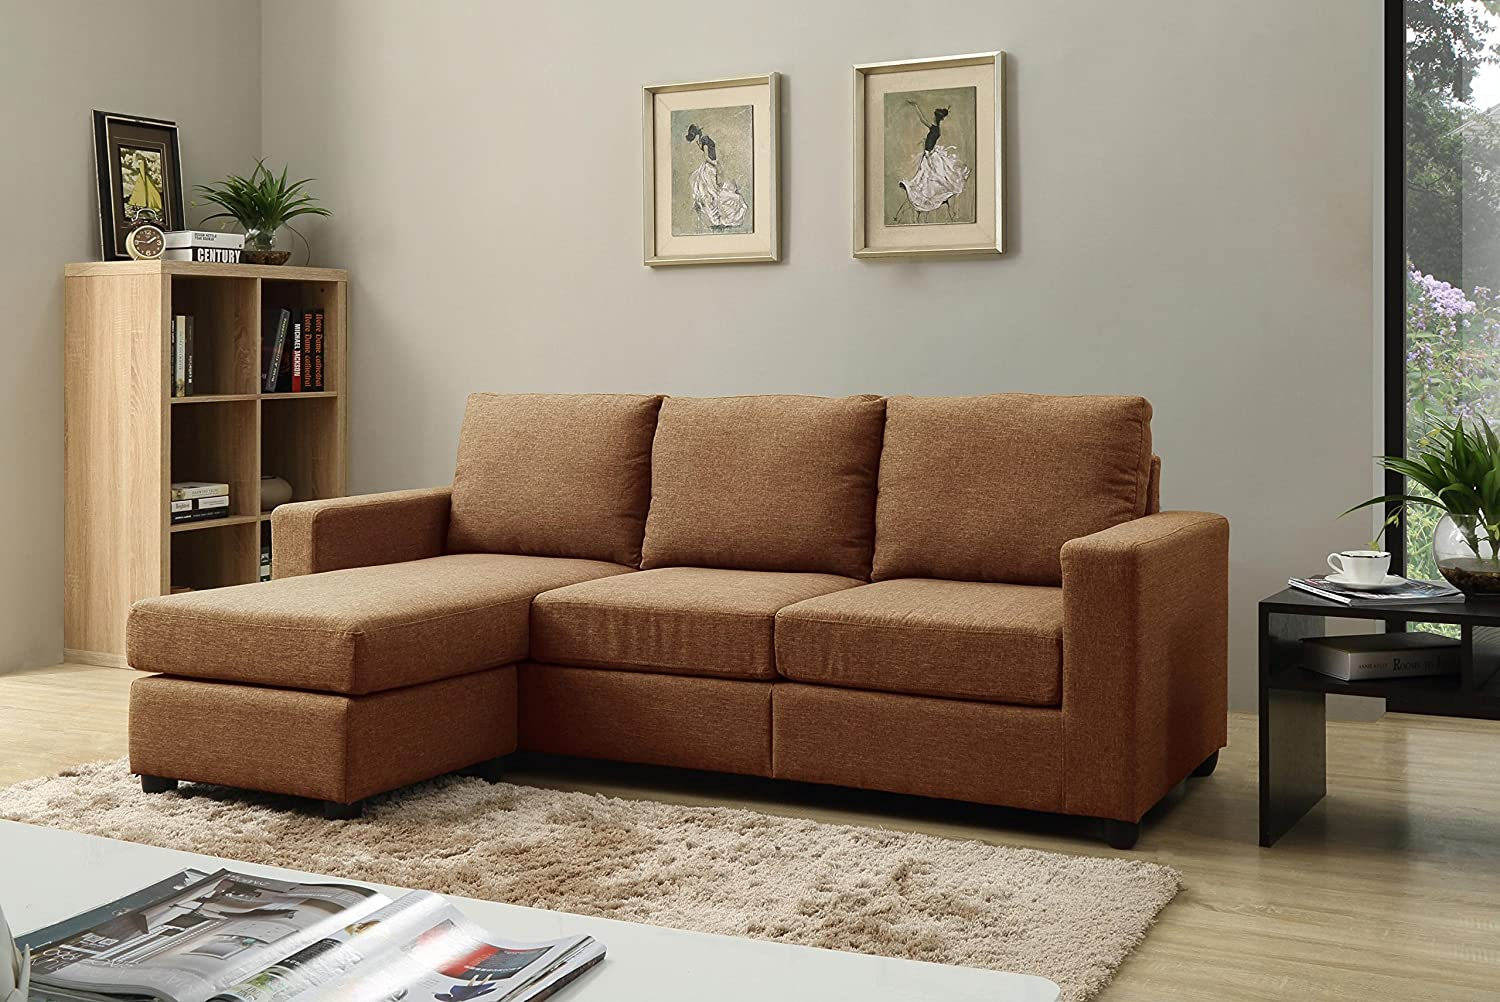 Good Amazon.com: NHI Express Alexandra Convertible Sectional Sofa, Brown:  Kitchen U0026 Dining